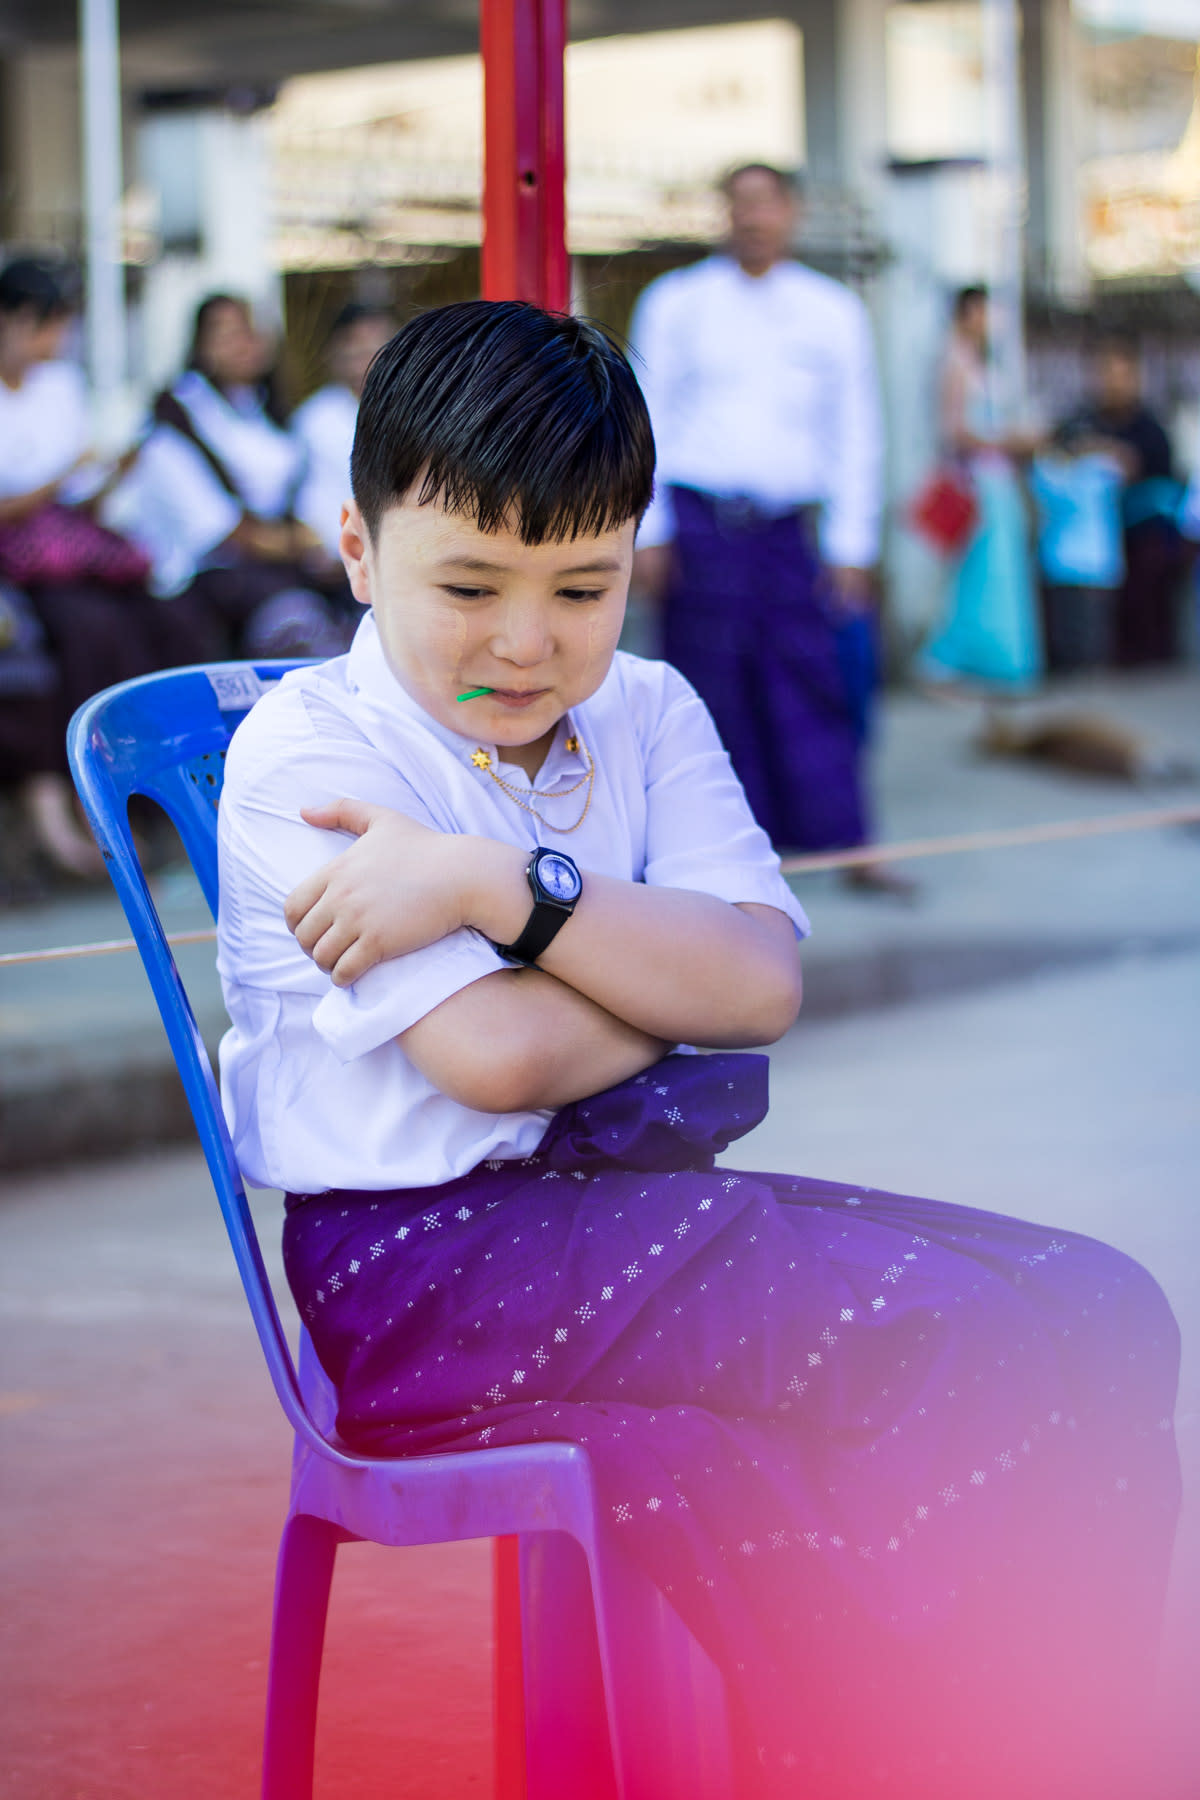 A child sitting on a blue chair with arms crossed